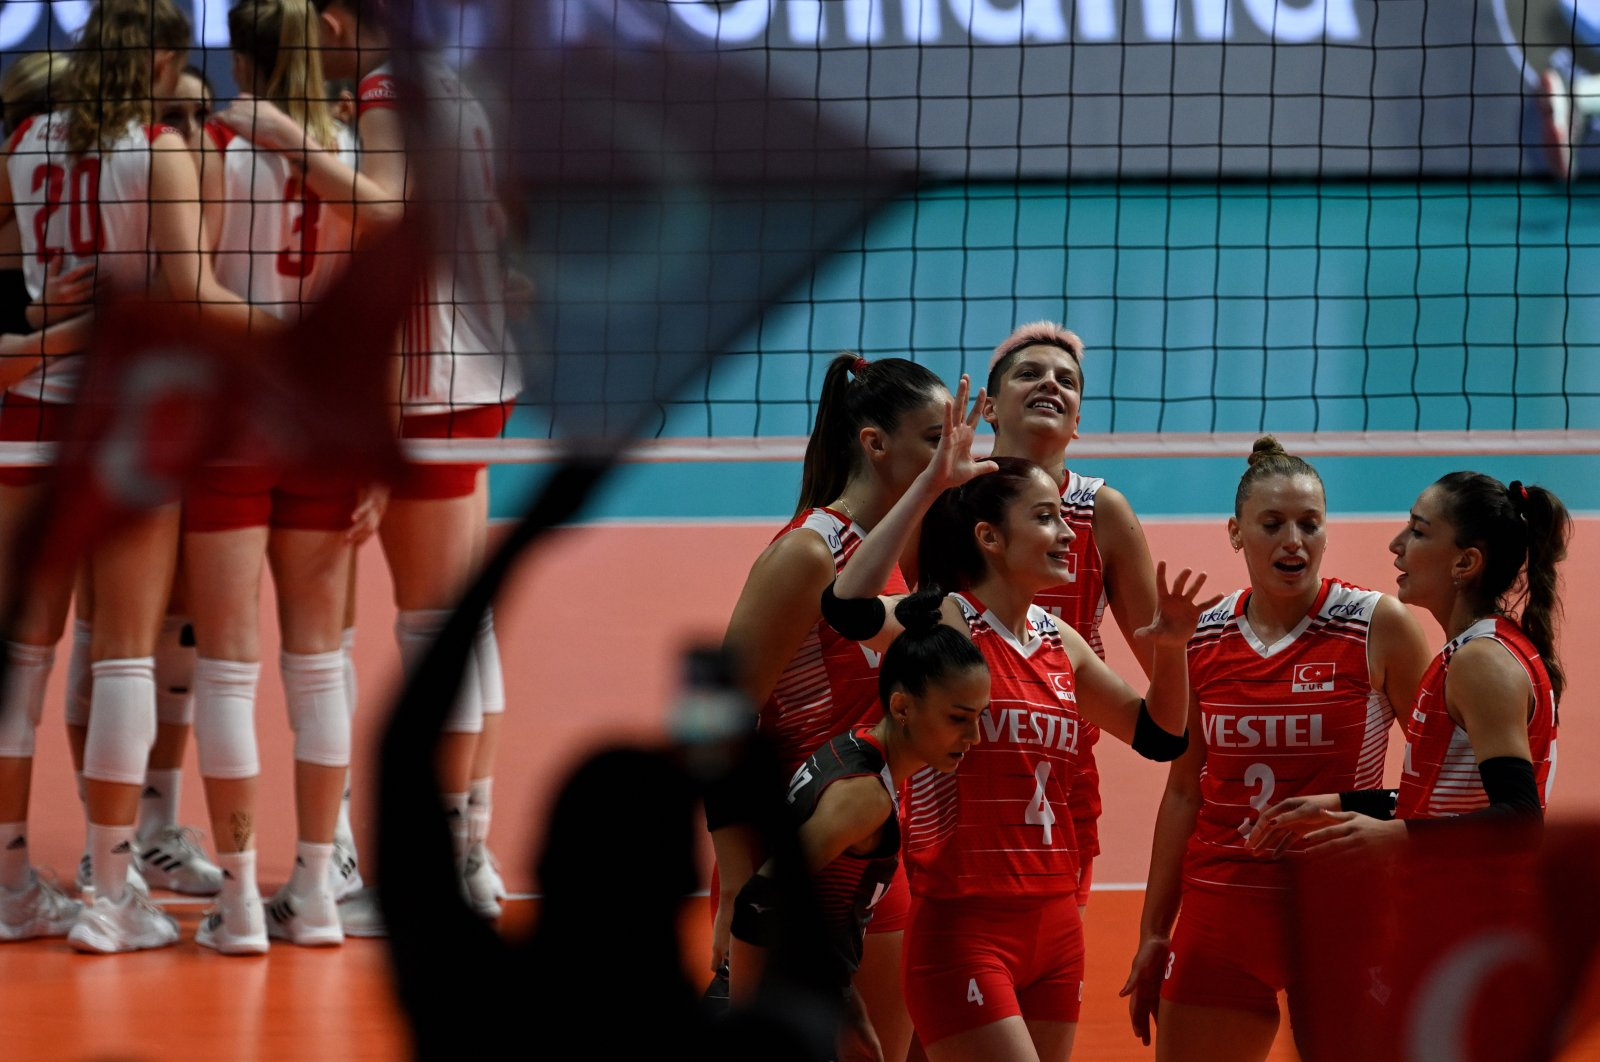 Turkey women's volleyball players react during their EuroVolley 2021 Women's championship quarterfinal against Poland in Plovdiv, Bulgaria, Aug. 31, 2021. (EPA Photo)